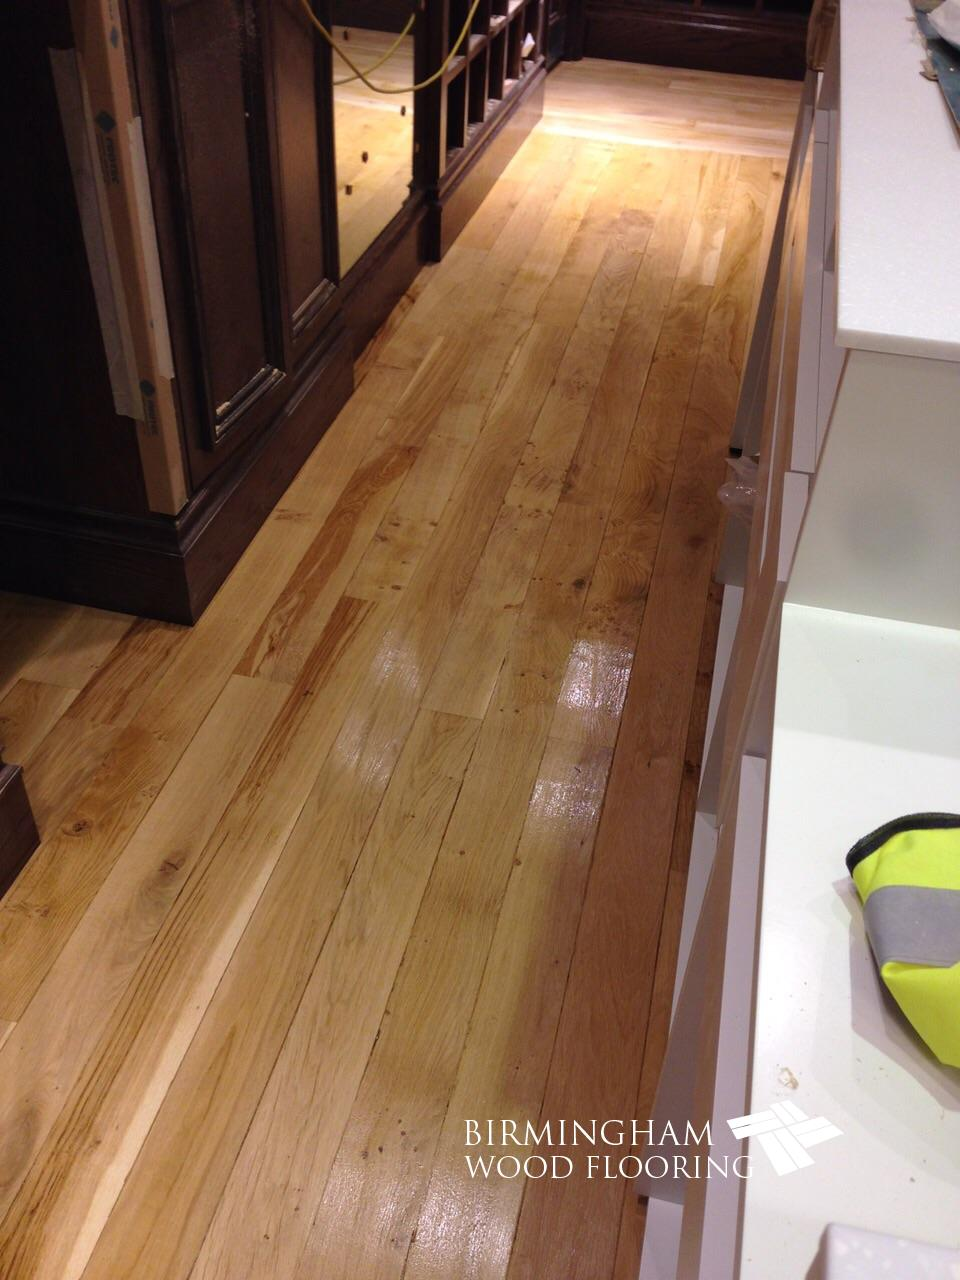 Commercial Amp Shop Wood Flooring Within Birmingham And The